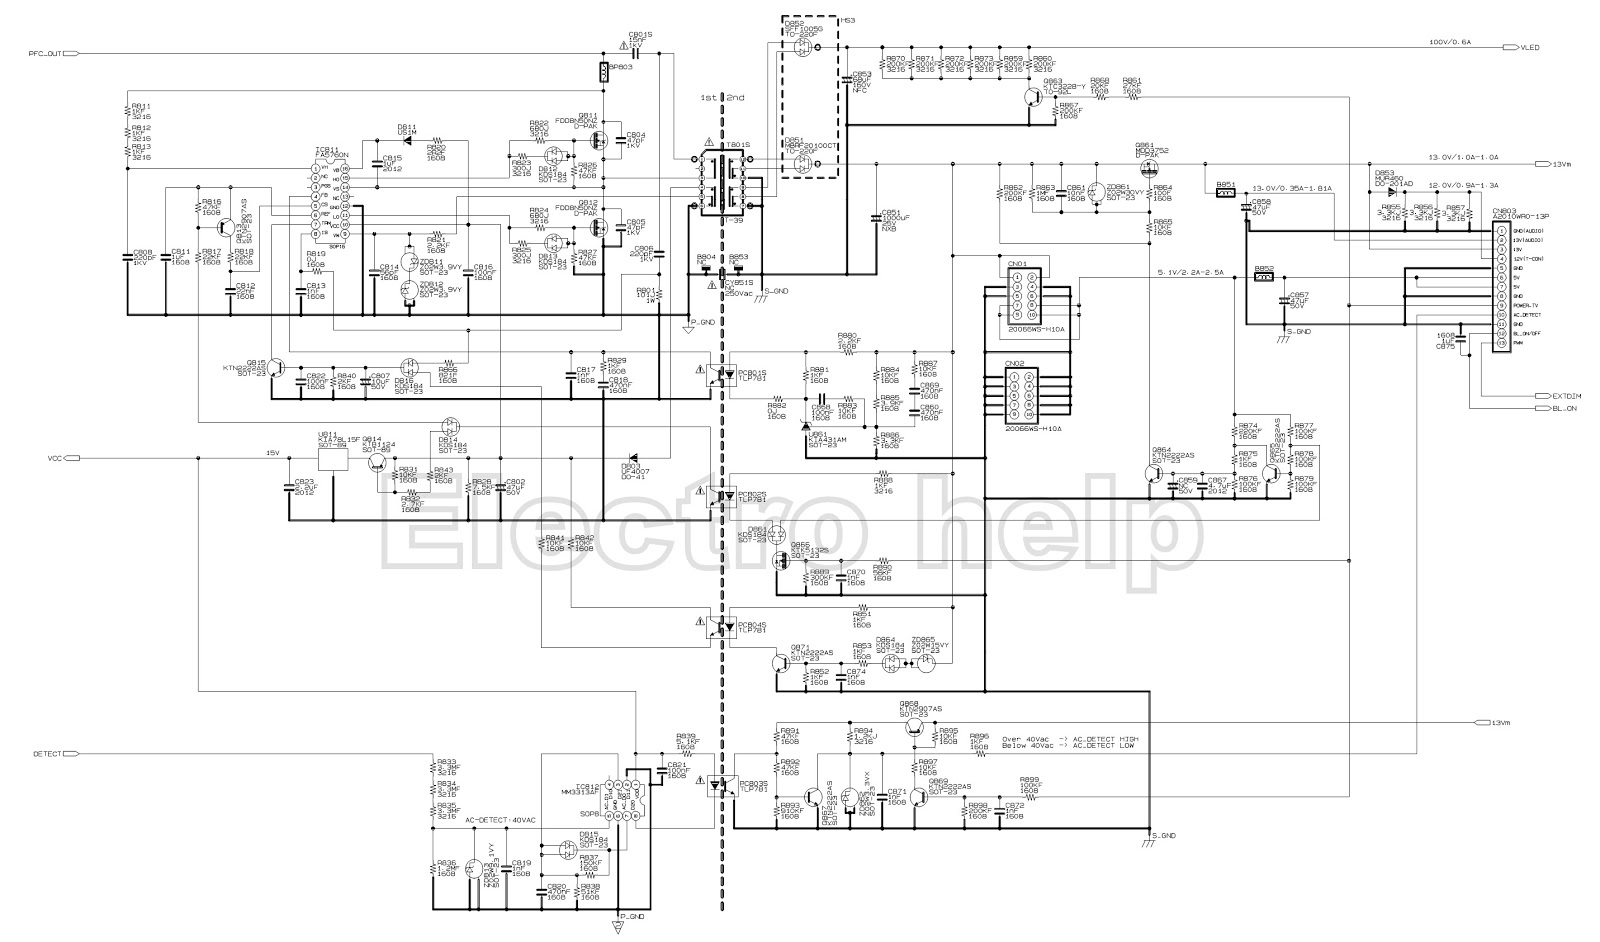 hight resolution of toshiba 32l2300 toshiba 39l2300 led lcd tv smps schematic 5v section led driver remote control handset